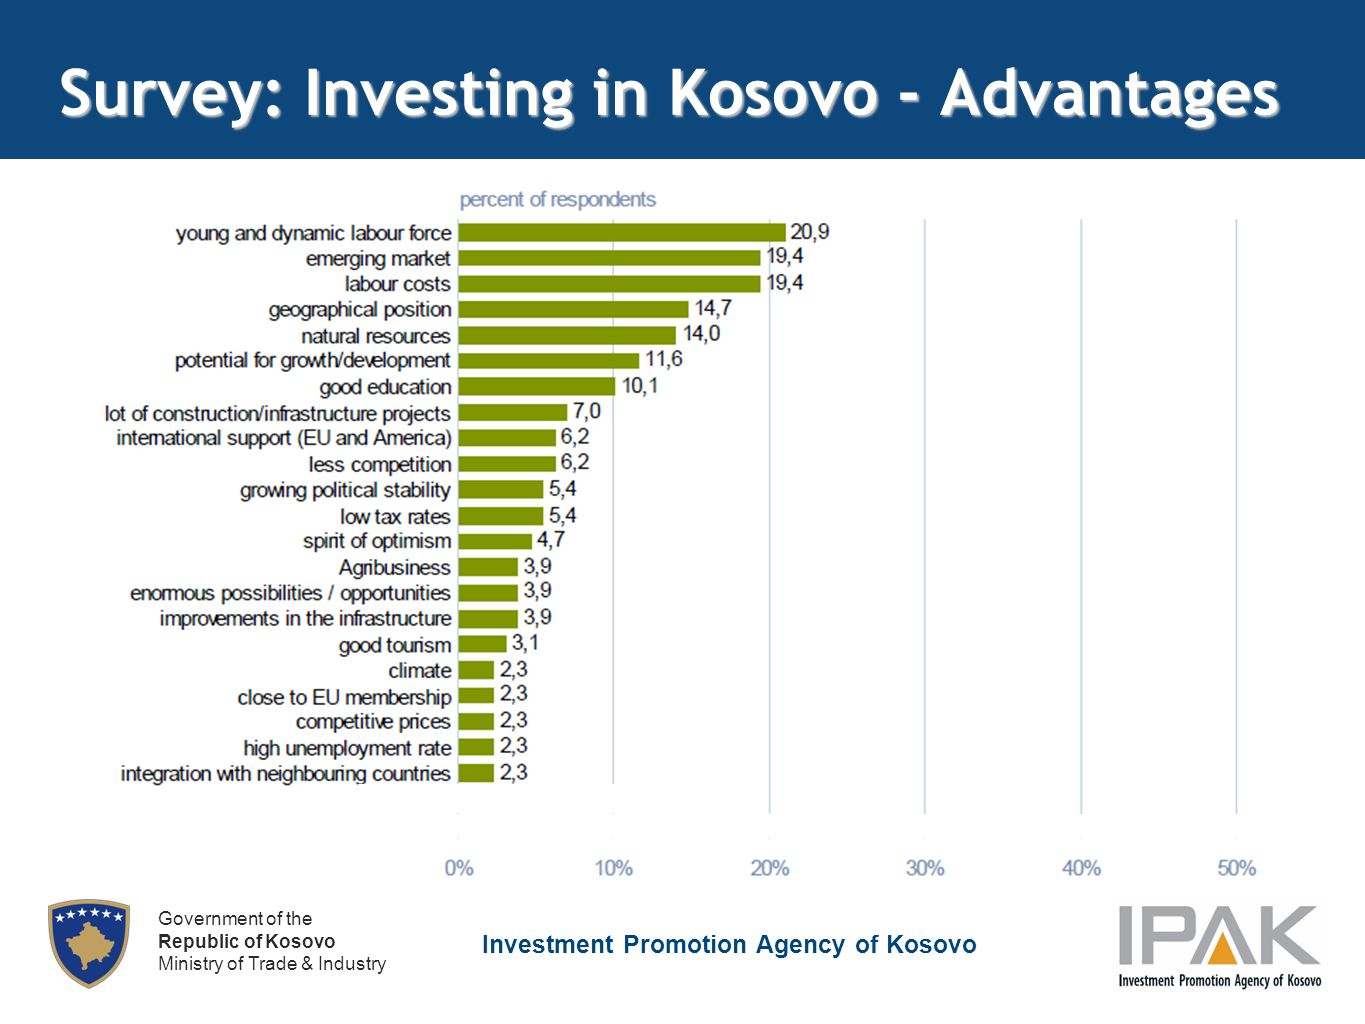 Investment Promotion Agency of Kosovo Government of the Republic of Kosovo Ministry of Trade & Industry Survey: Investing in Kosovo - Advantages